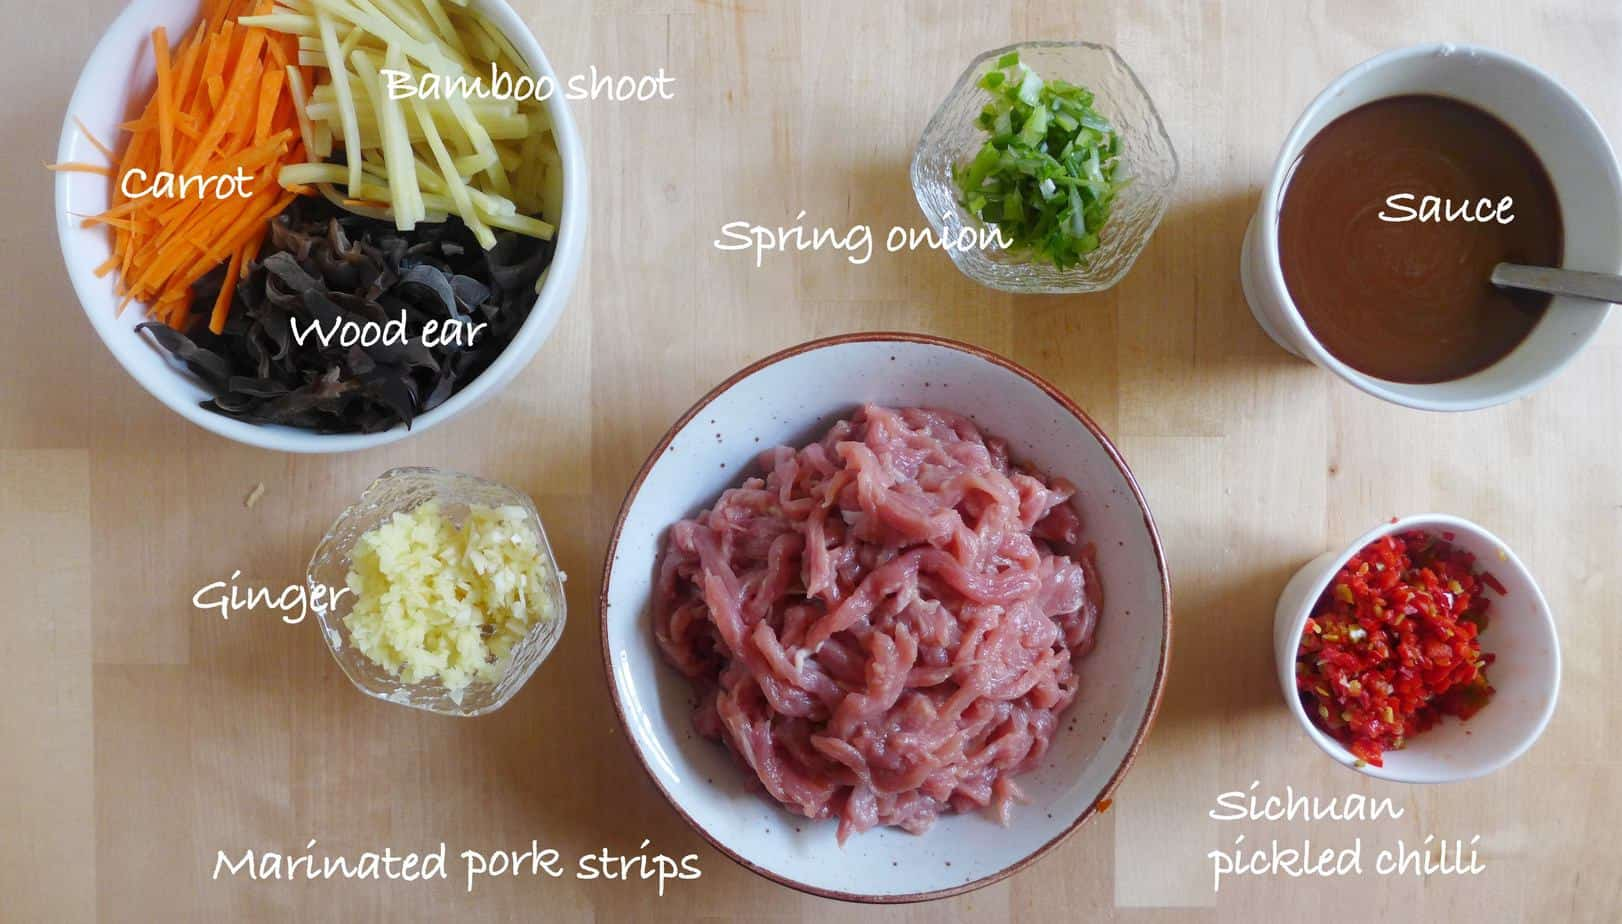 Ingredients for making Sichuan shredded pork with garlic sauce